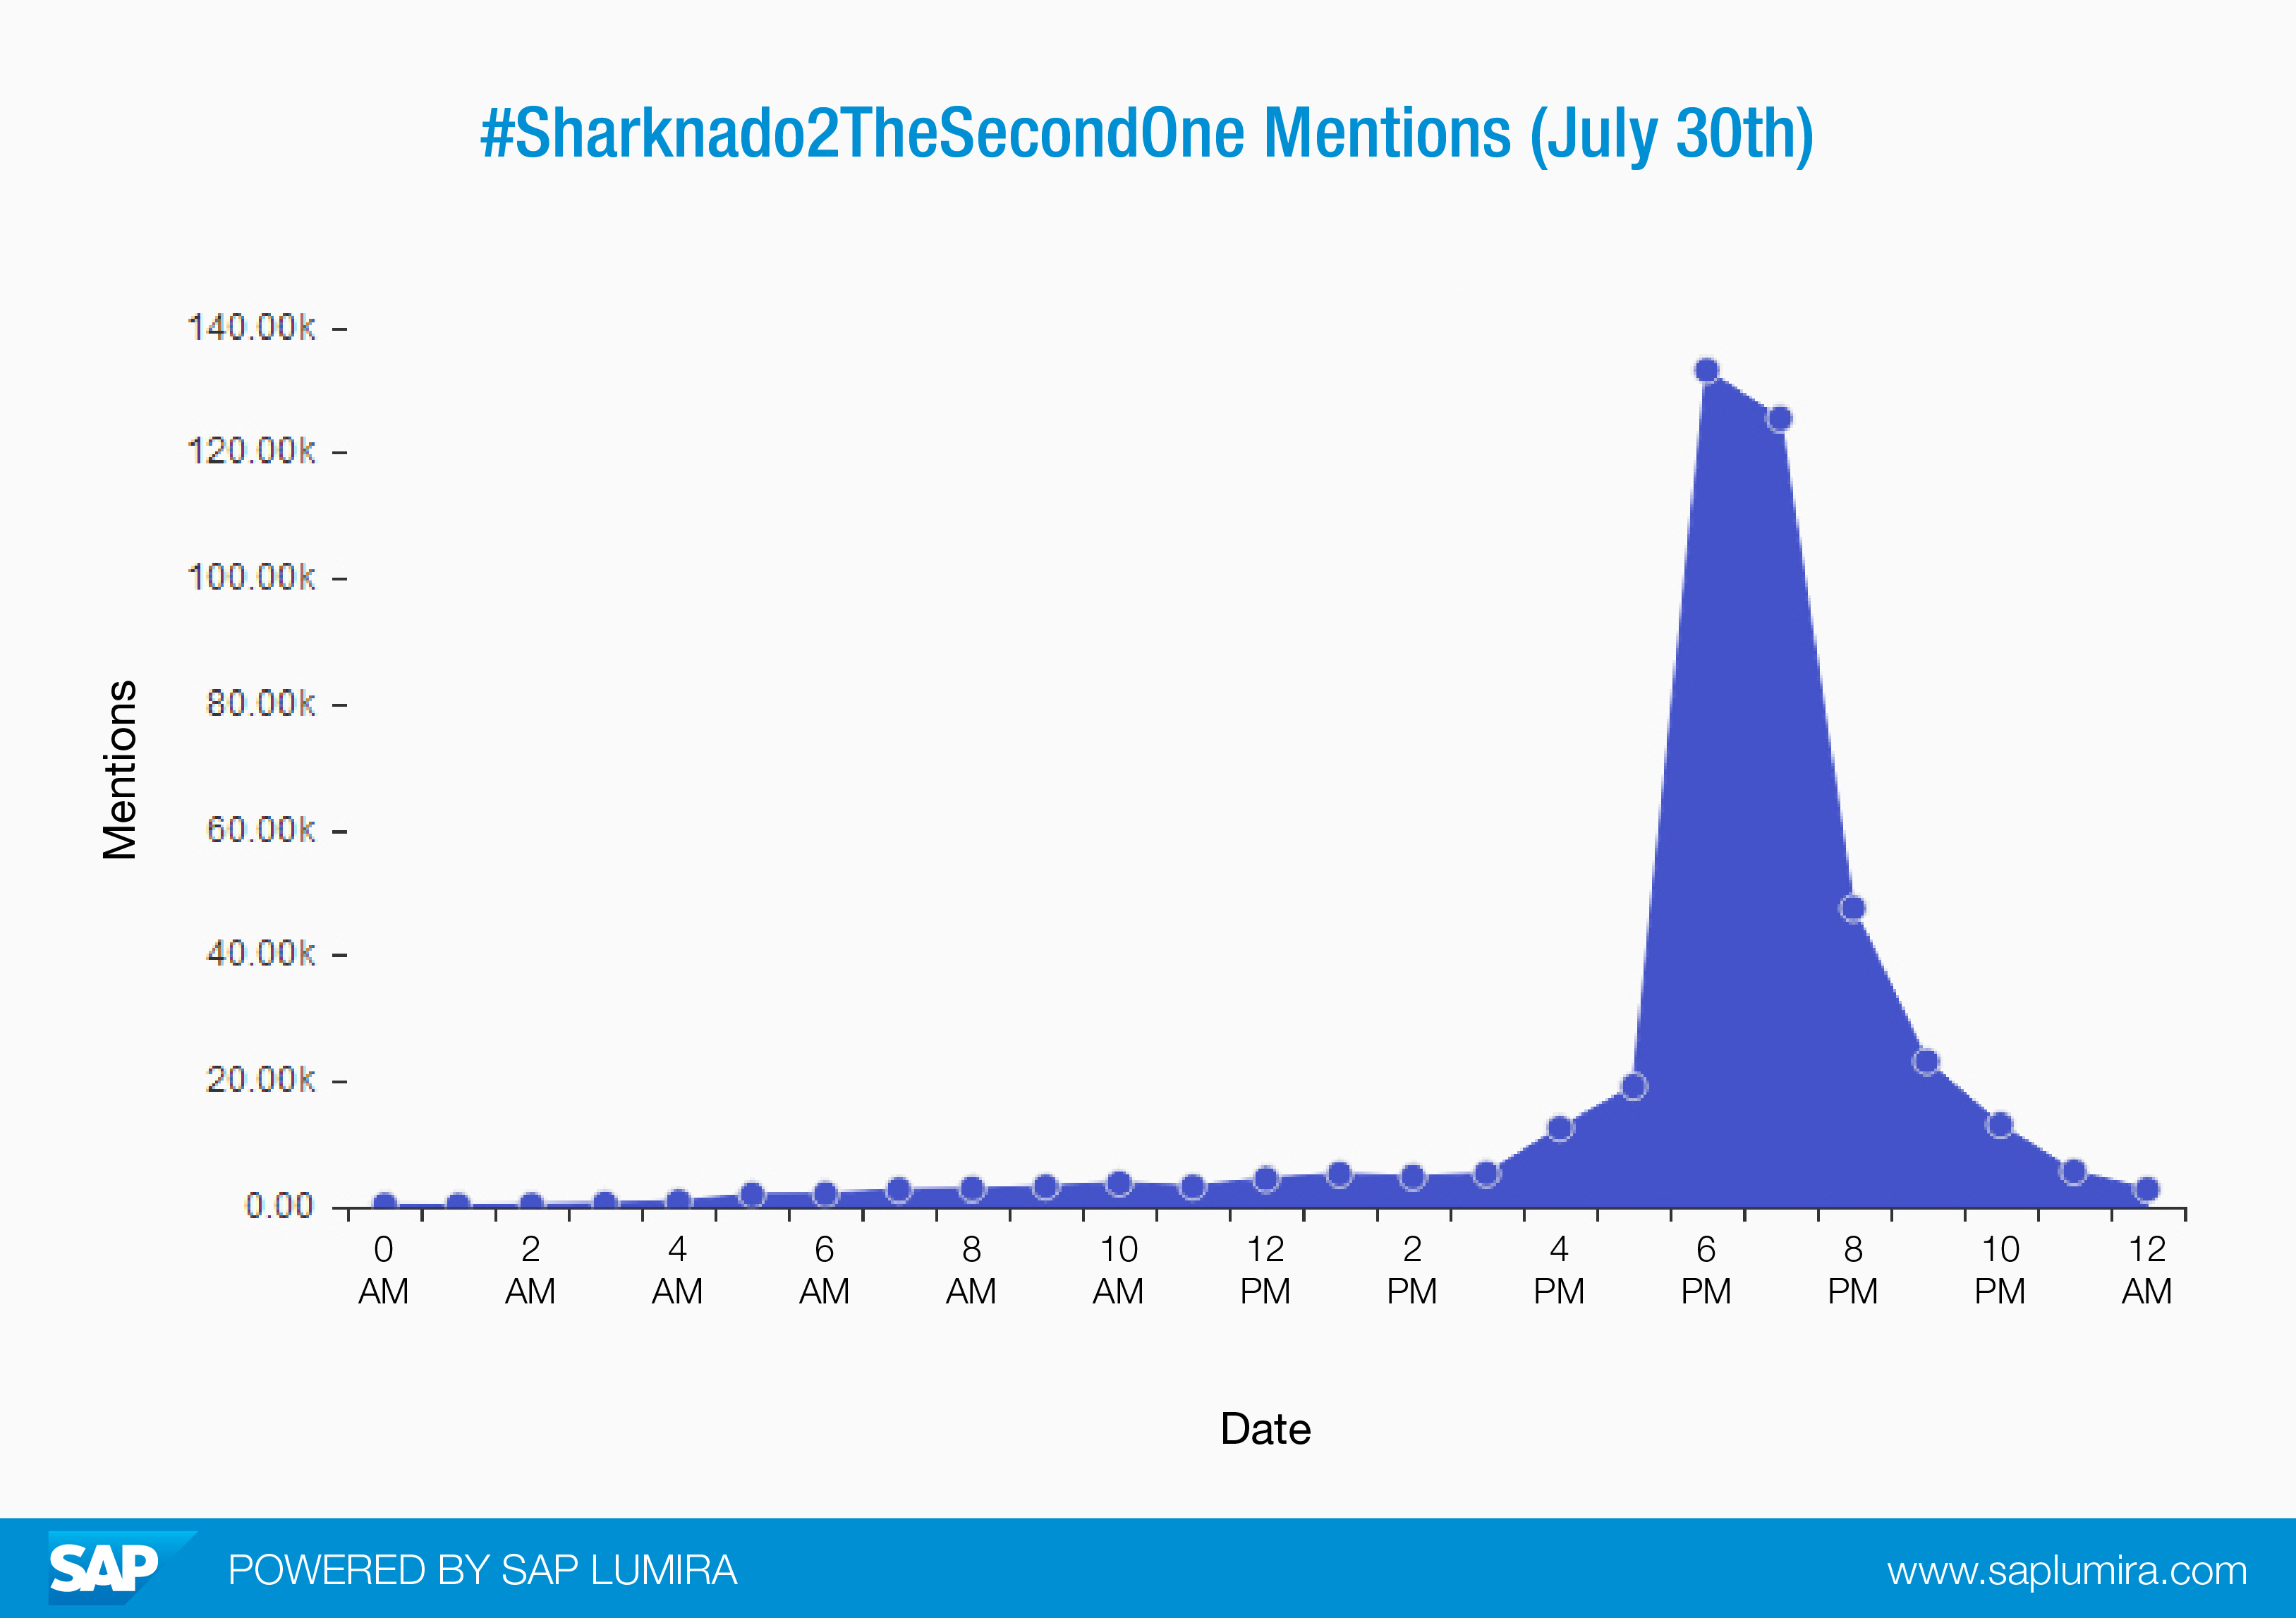 Sharknado Mentions.jpg